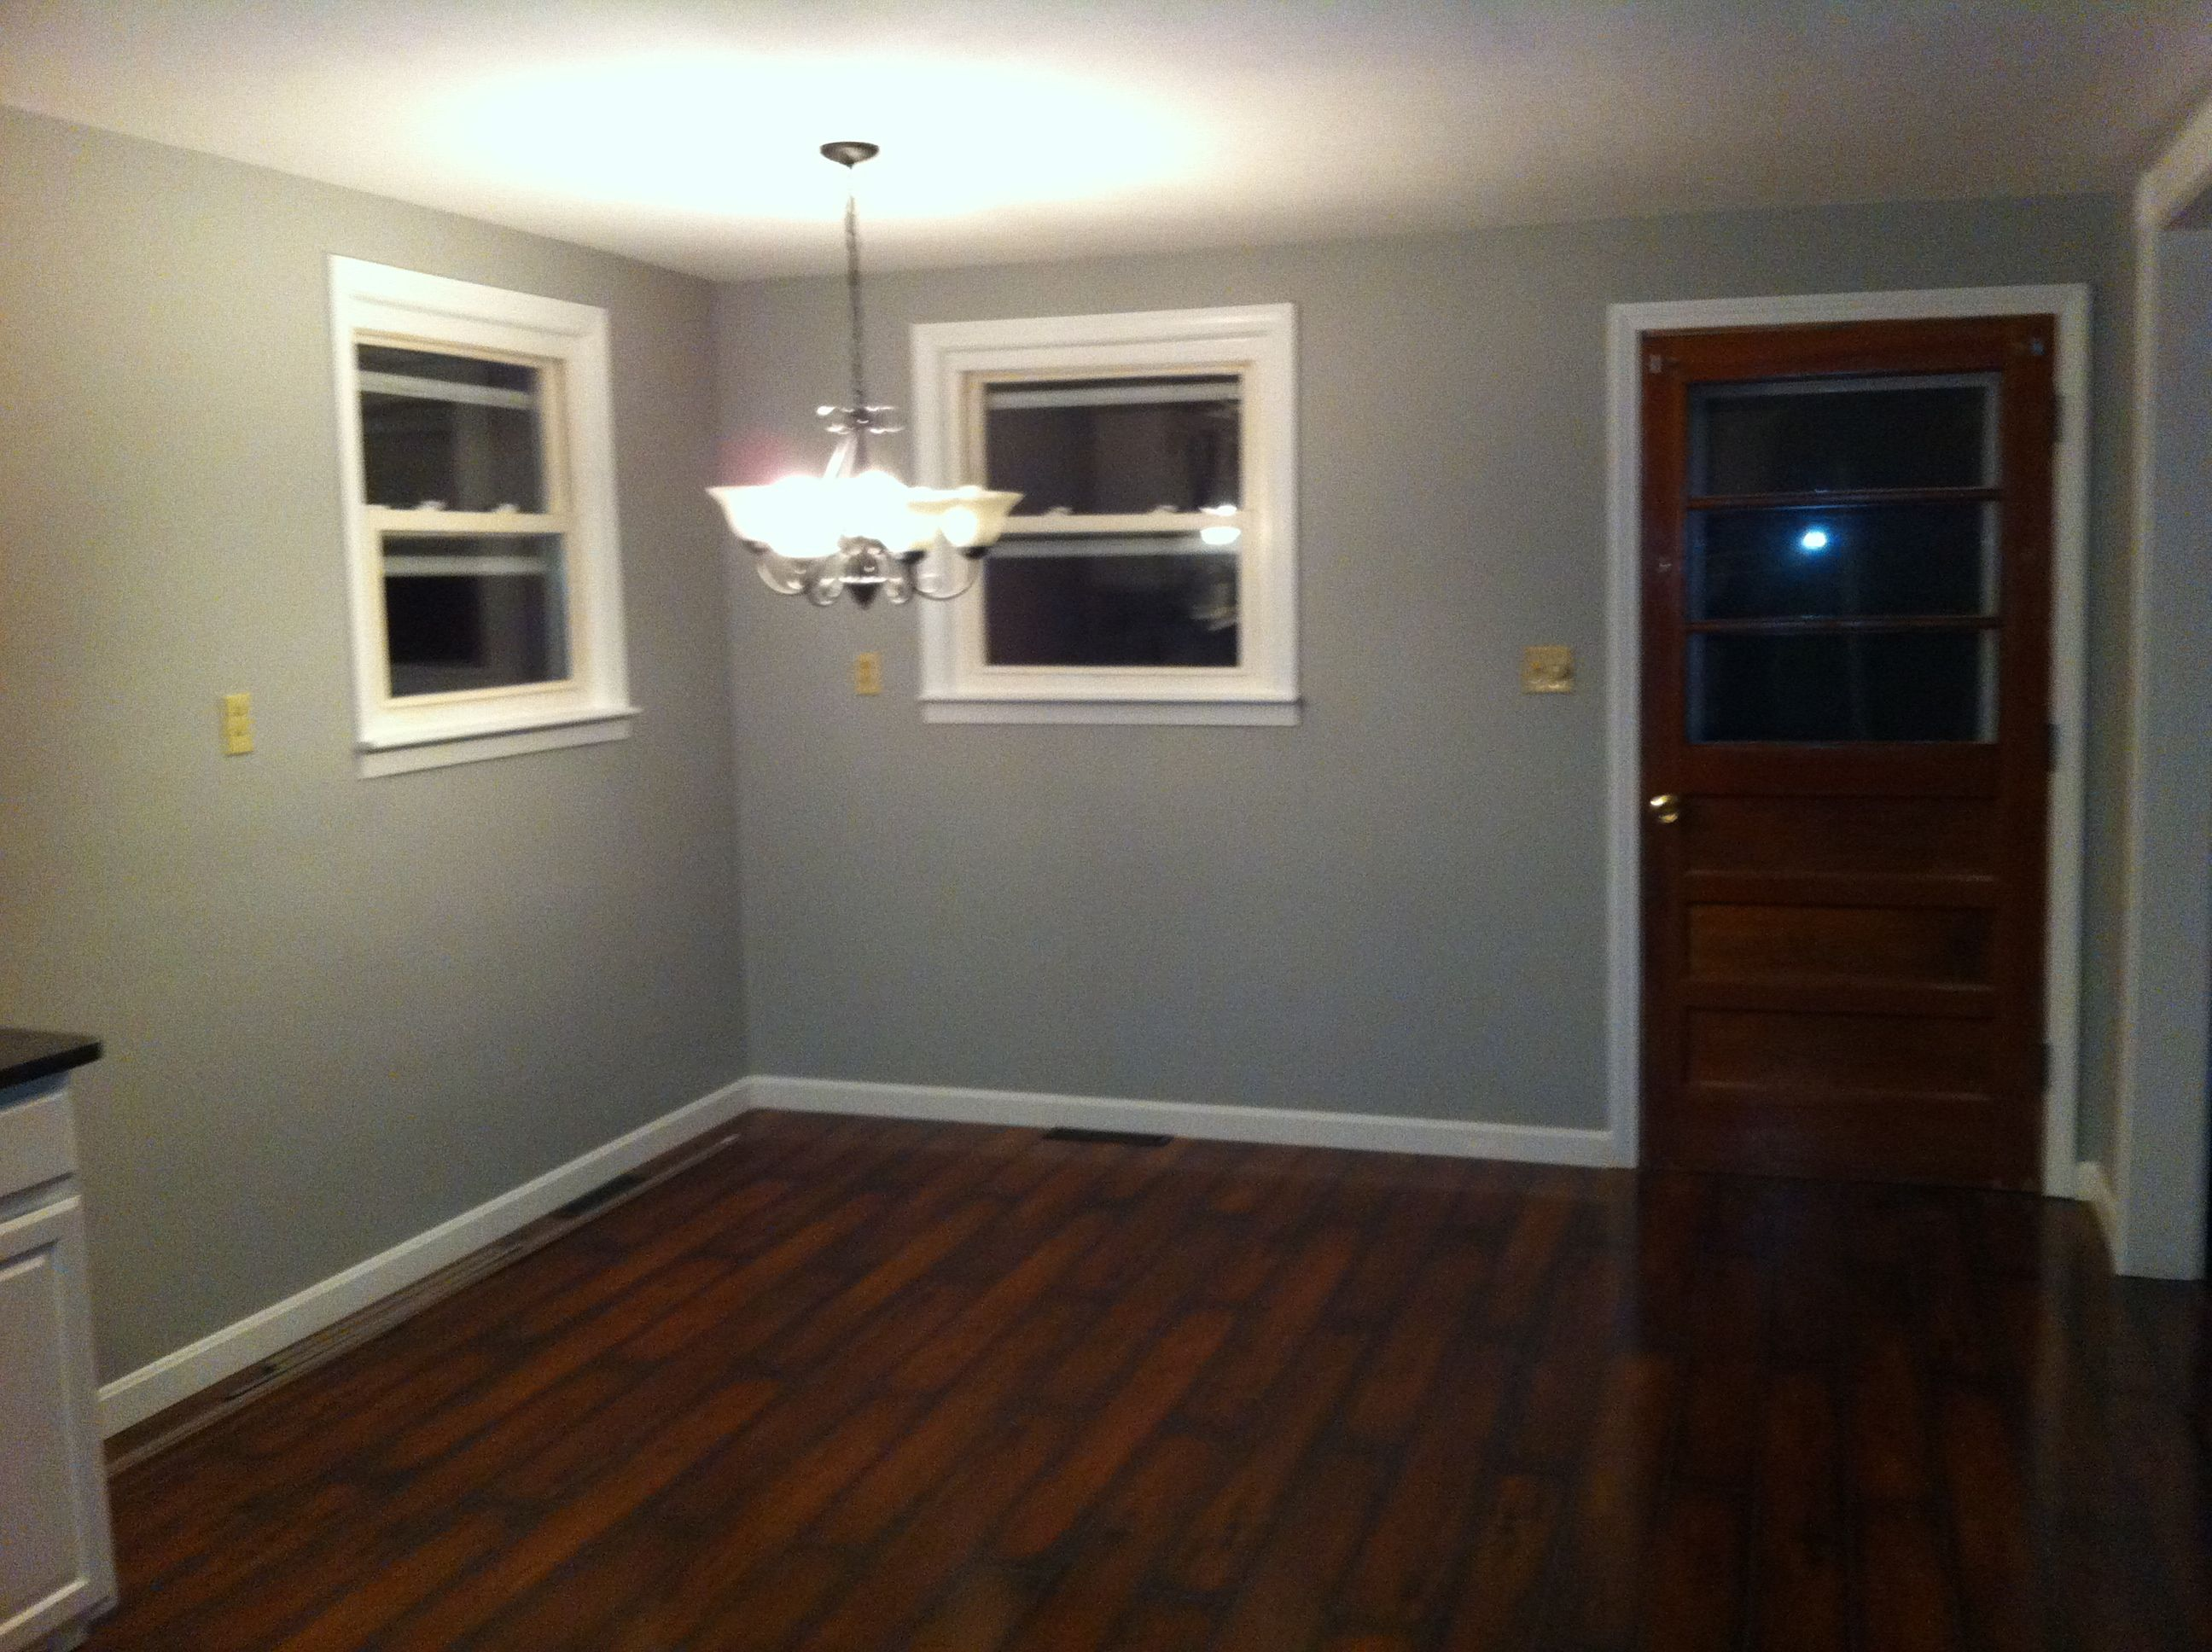 Master bedroom paint colors benjamin moore - Benjamin Moore Coventry Grey Just Painted Master Bedroom This Color And I Am In Love